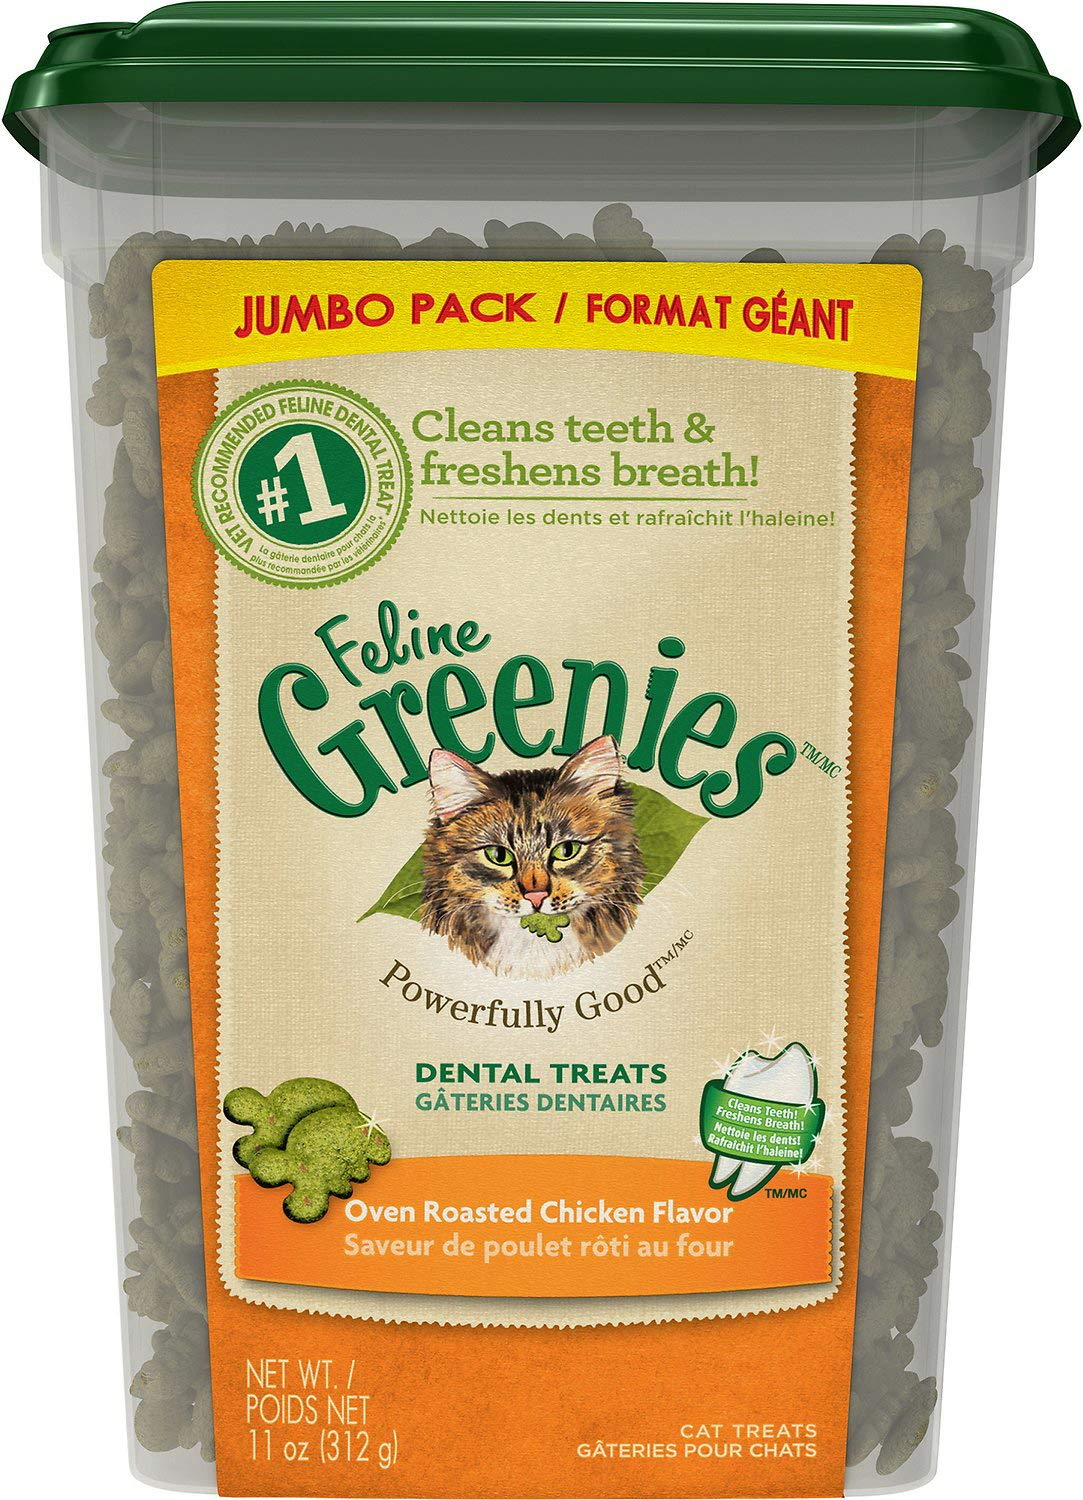 Greenies Feline Dental Cat Treats, Oven Roasted Chicken, 11 Ounce, 4 Pack